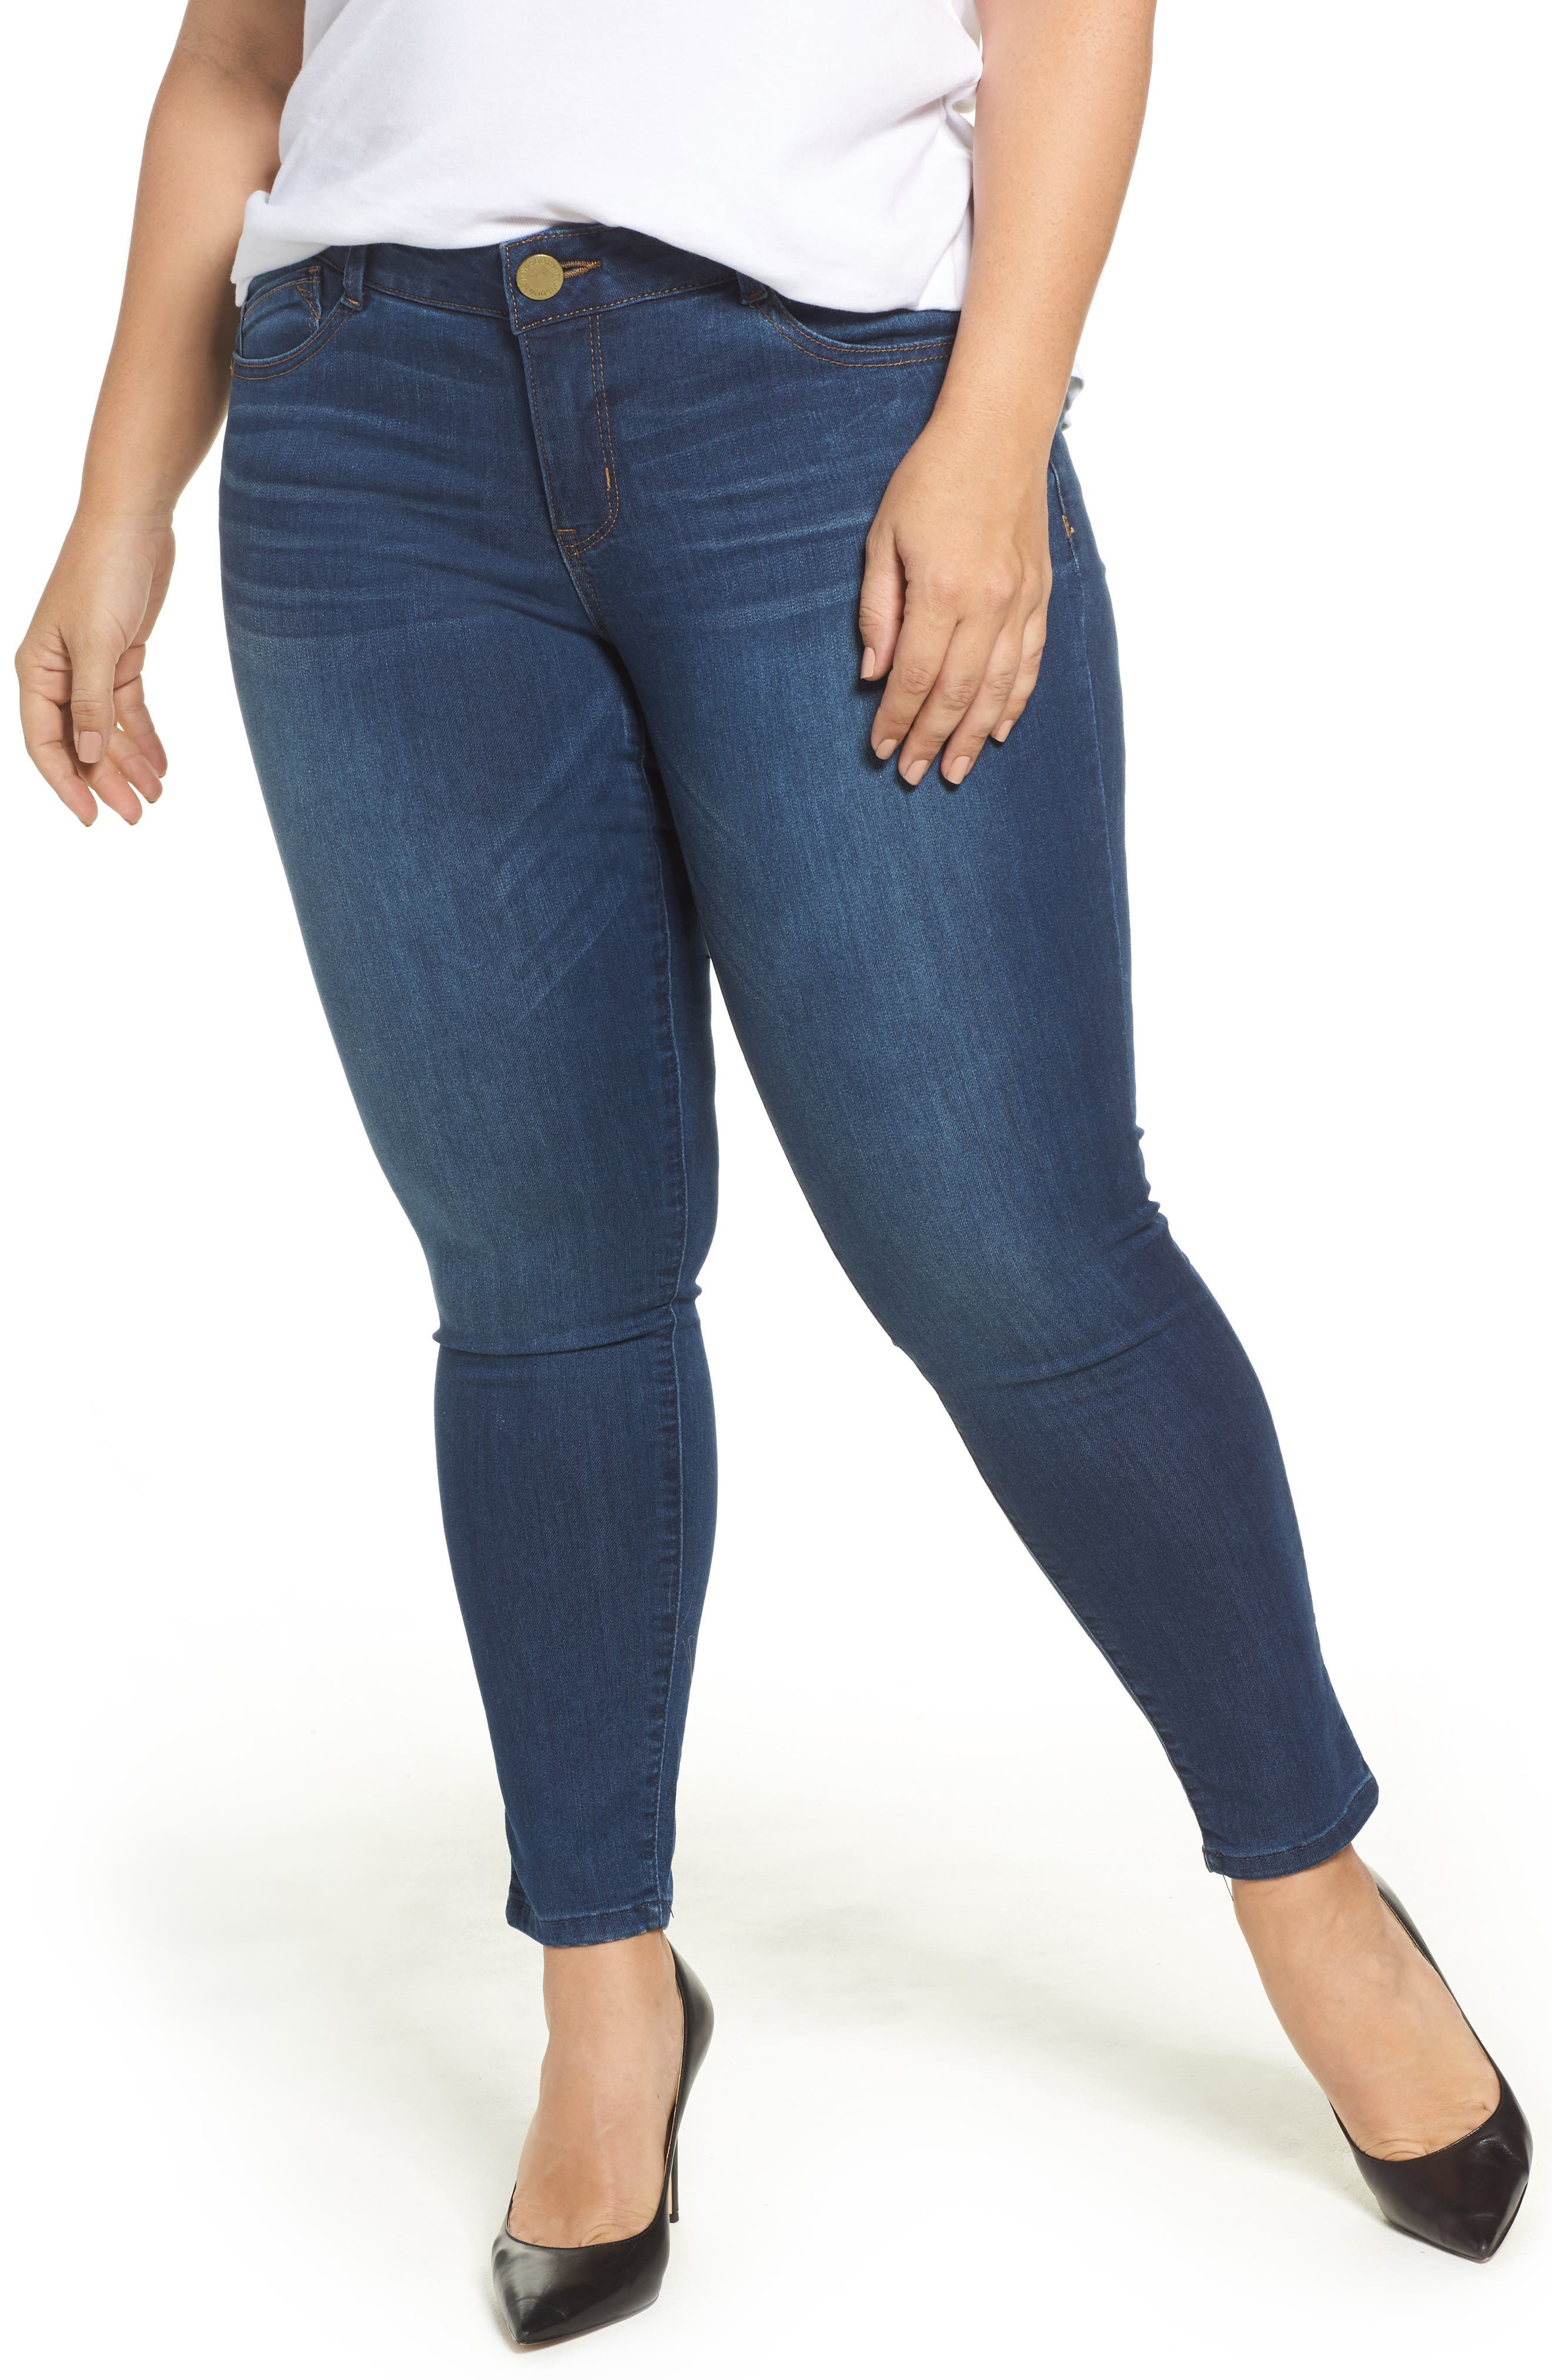 Main Image - Wit & Wisdom Ab-solution Skinny Jeans (Plus Size) (Nordstrom Exclusive)